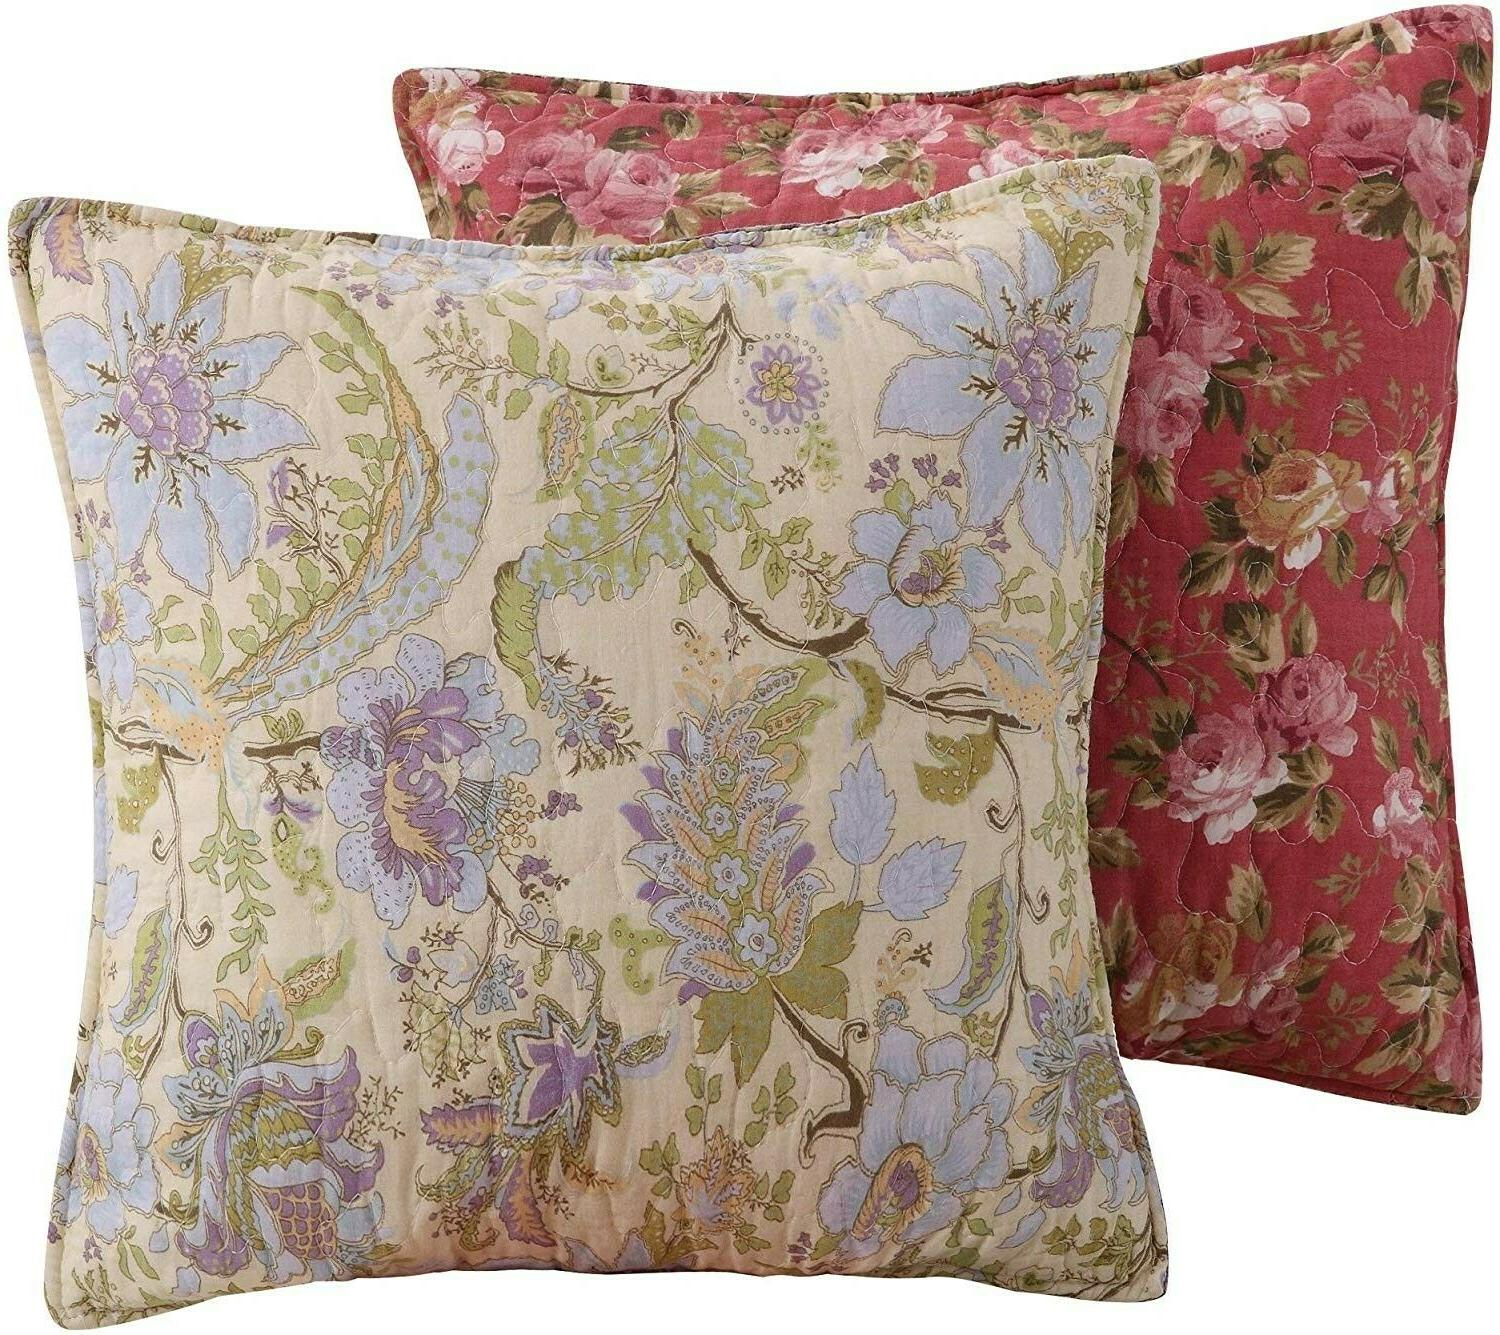 Greenland Home Blooming Cotton Patchwork Quilt 5-Piece Full/Queen